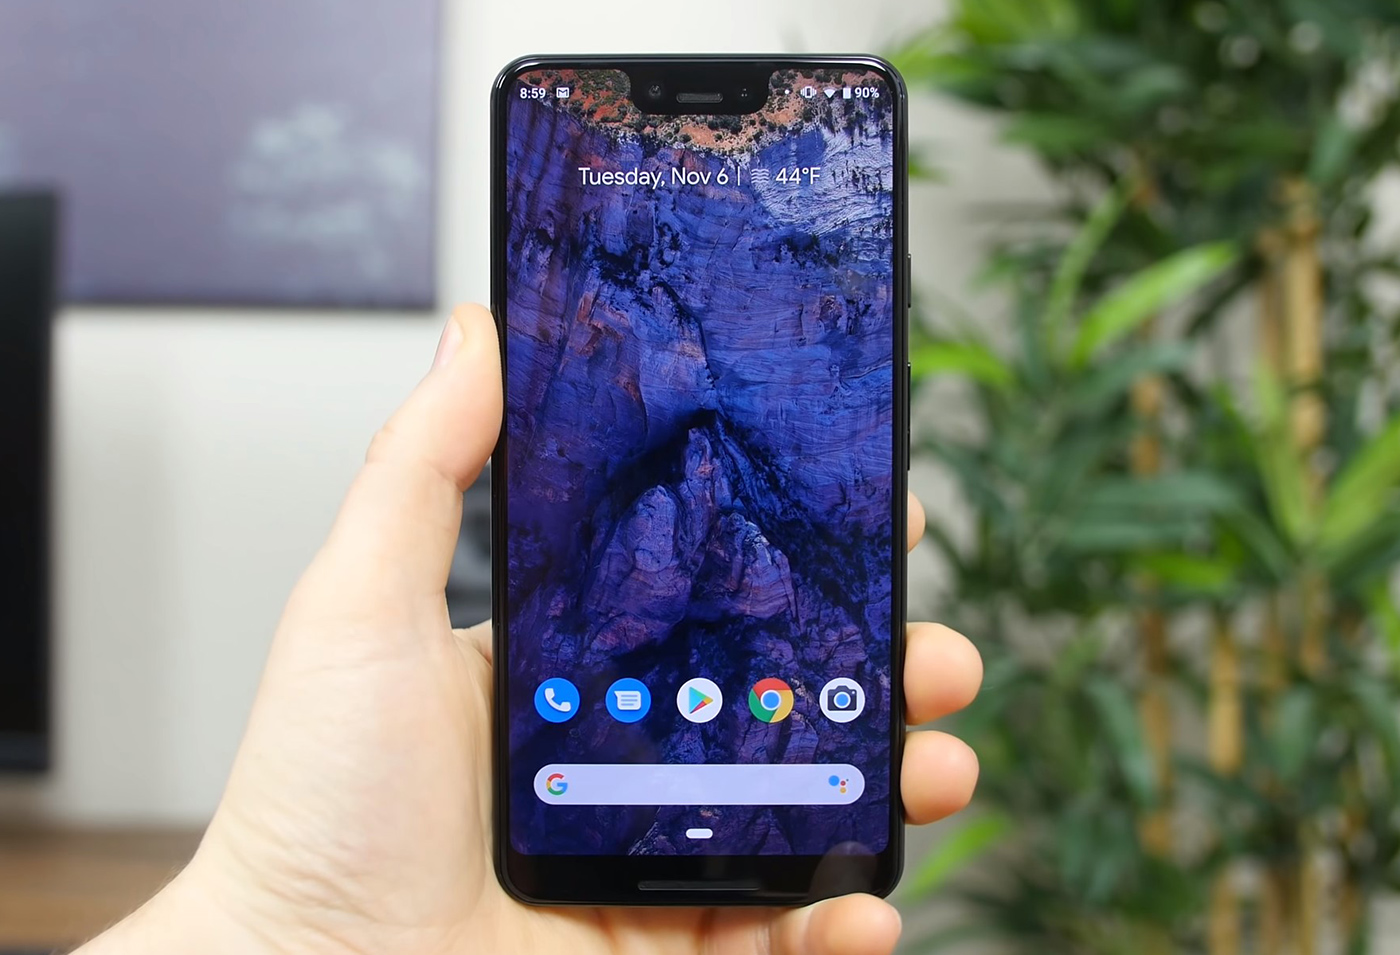 T-Mobile may launch Google Pixel 3 and Pixel 3 XL soon - TmoNews